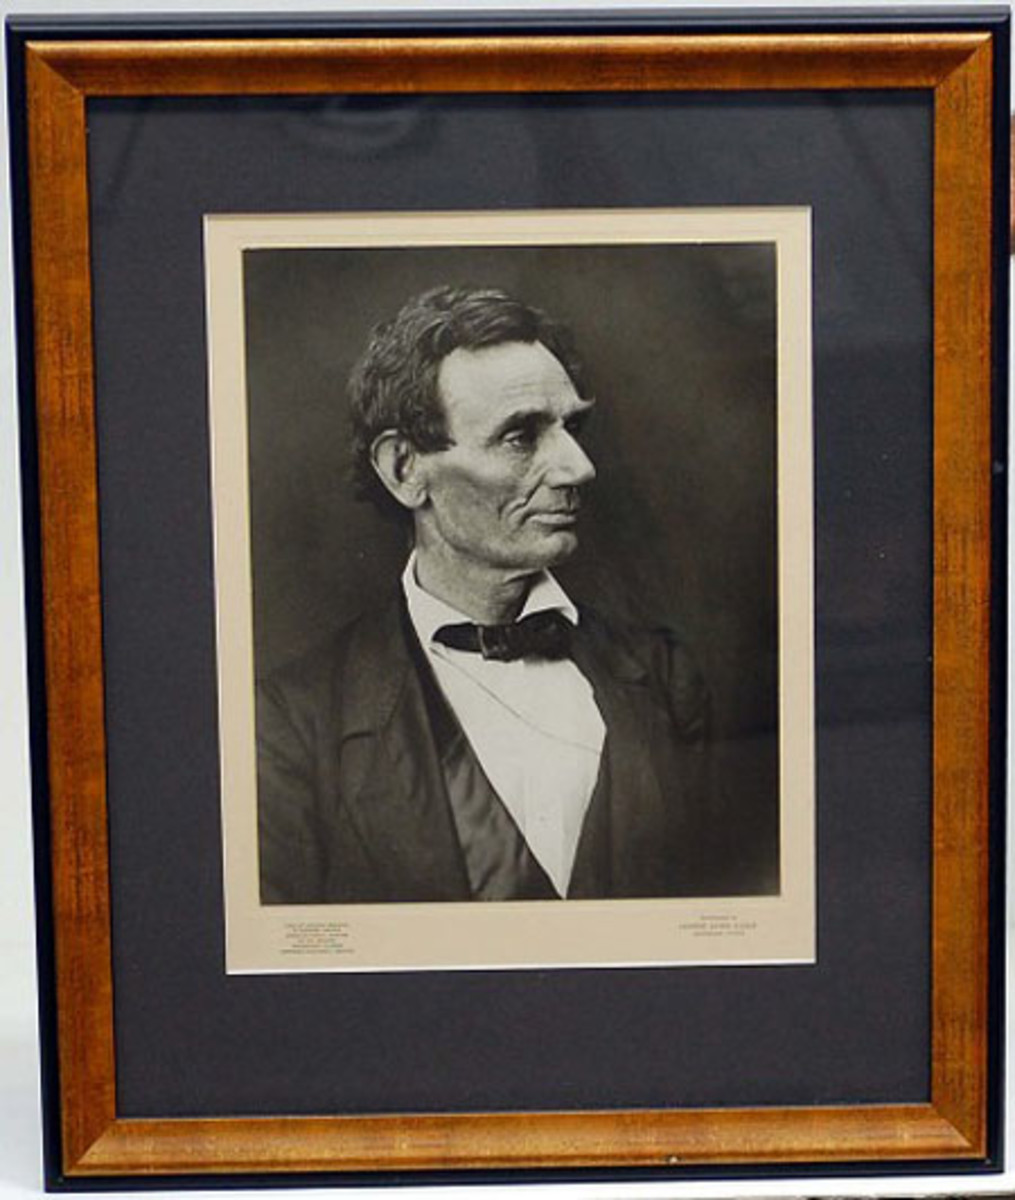 Framed 1860 campaign photo print of Abraham Lincoln, made in 1956 by Herbert Georg Studio.